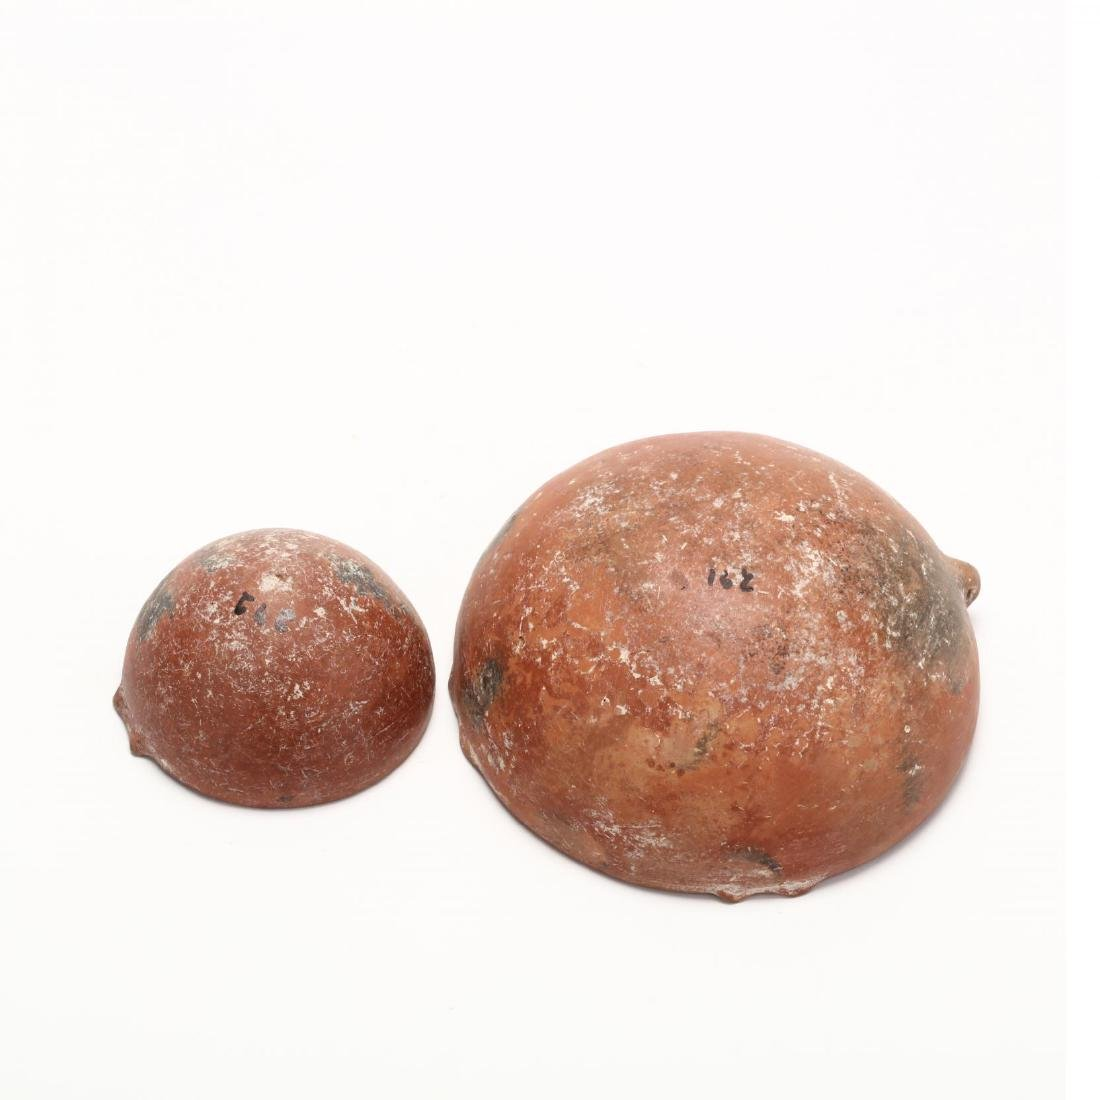 Two Cypriot Early Bronze Age Polished Red Ware Bowls - 5